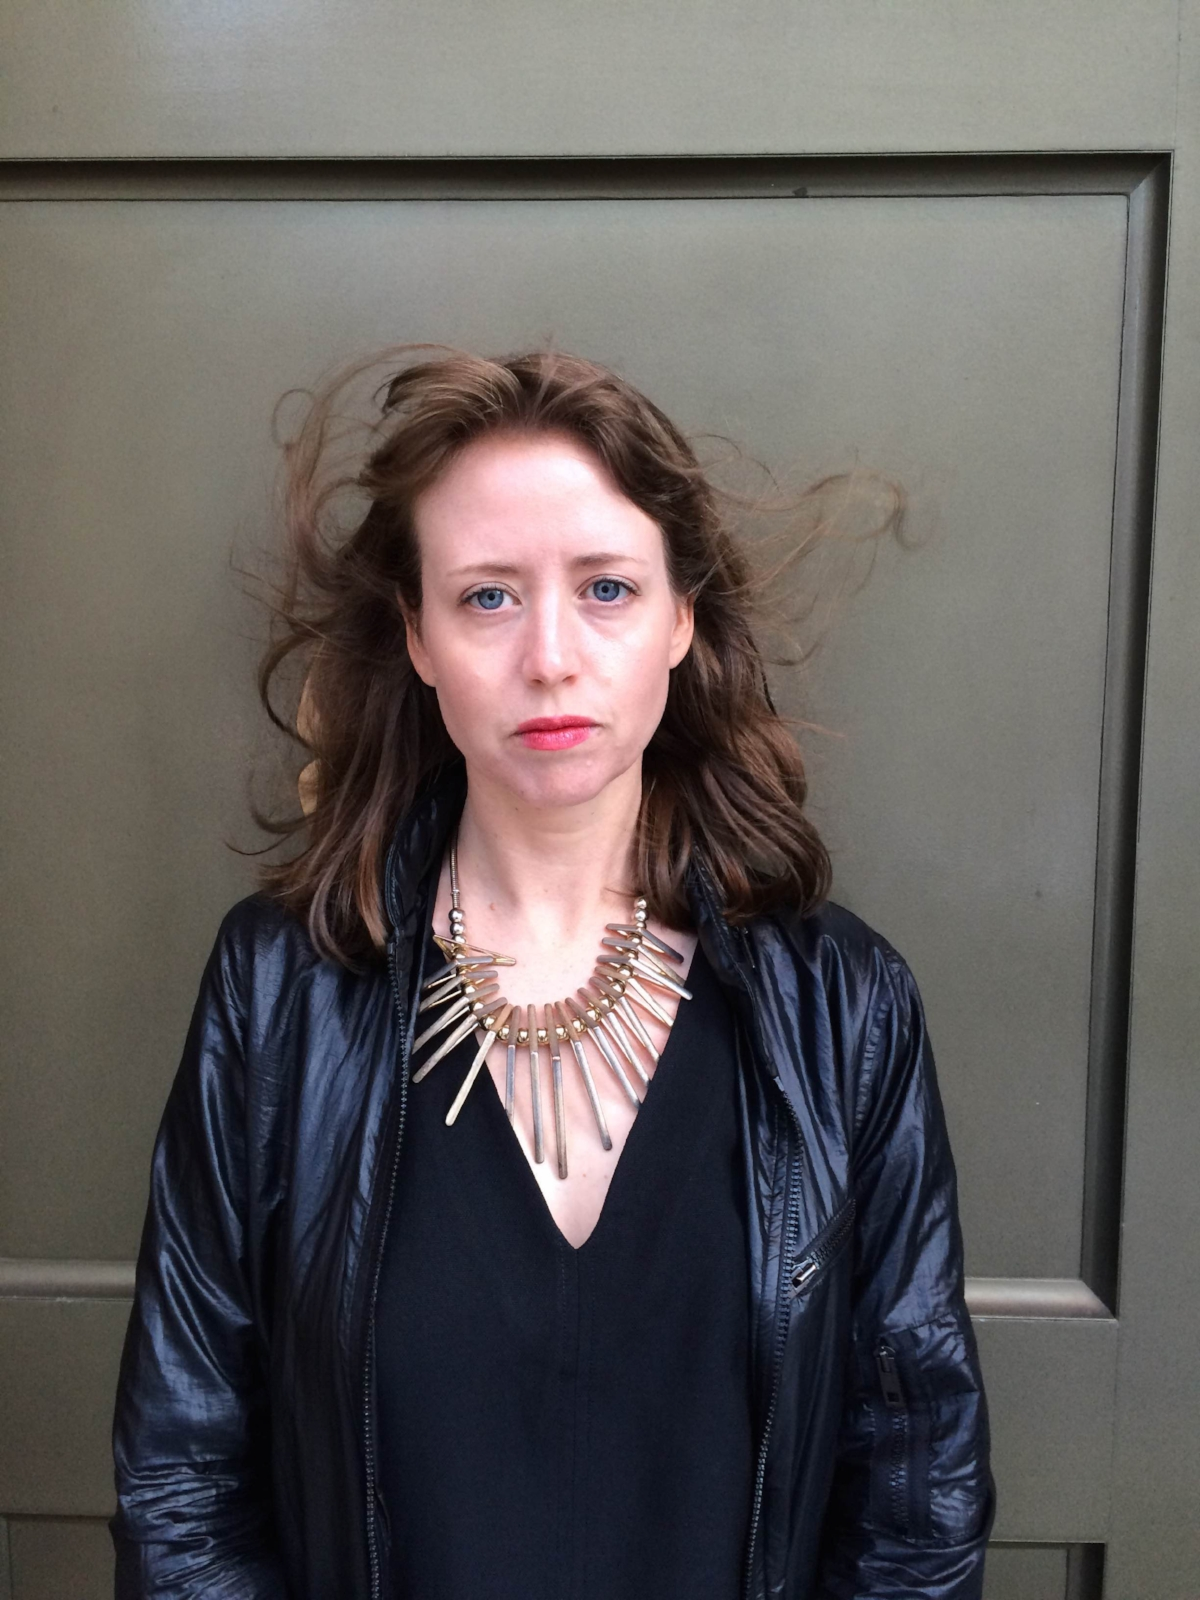 Laura van den Berg is the author of the novels The Third Hotel (FSG, August 2018) and Find Me, which was selected as a best book of 2015 by Time Out New York and NPR. She is also the author of two story collections What the World Will Look Like When All the Water Leaves Us and The Isle of Youth, both finalists for the Frank O'Connor International Short Story Award. Her honors include the Bard Fiction Prize, the Rosenthal Family Foundation Award from the American Academy of Arts and Letters, an O. Henry Award, and fellowships from the MacDowell Colony and the Civitella Ranieri Foundation; her fiction has been anthologized in The Best American Short Stories. Laura is a Briggs-Copeland Lecturer in Fiction at Harvard University and also teaches in the Low-Residency MFA Program for Writers at Warren Wilson College. She lives in Cambridge with her husband and dog.